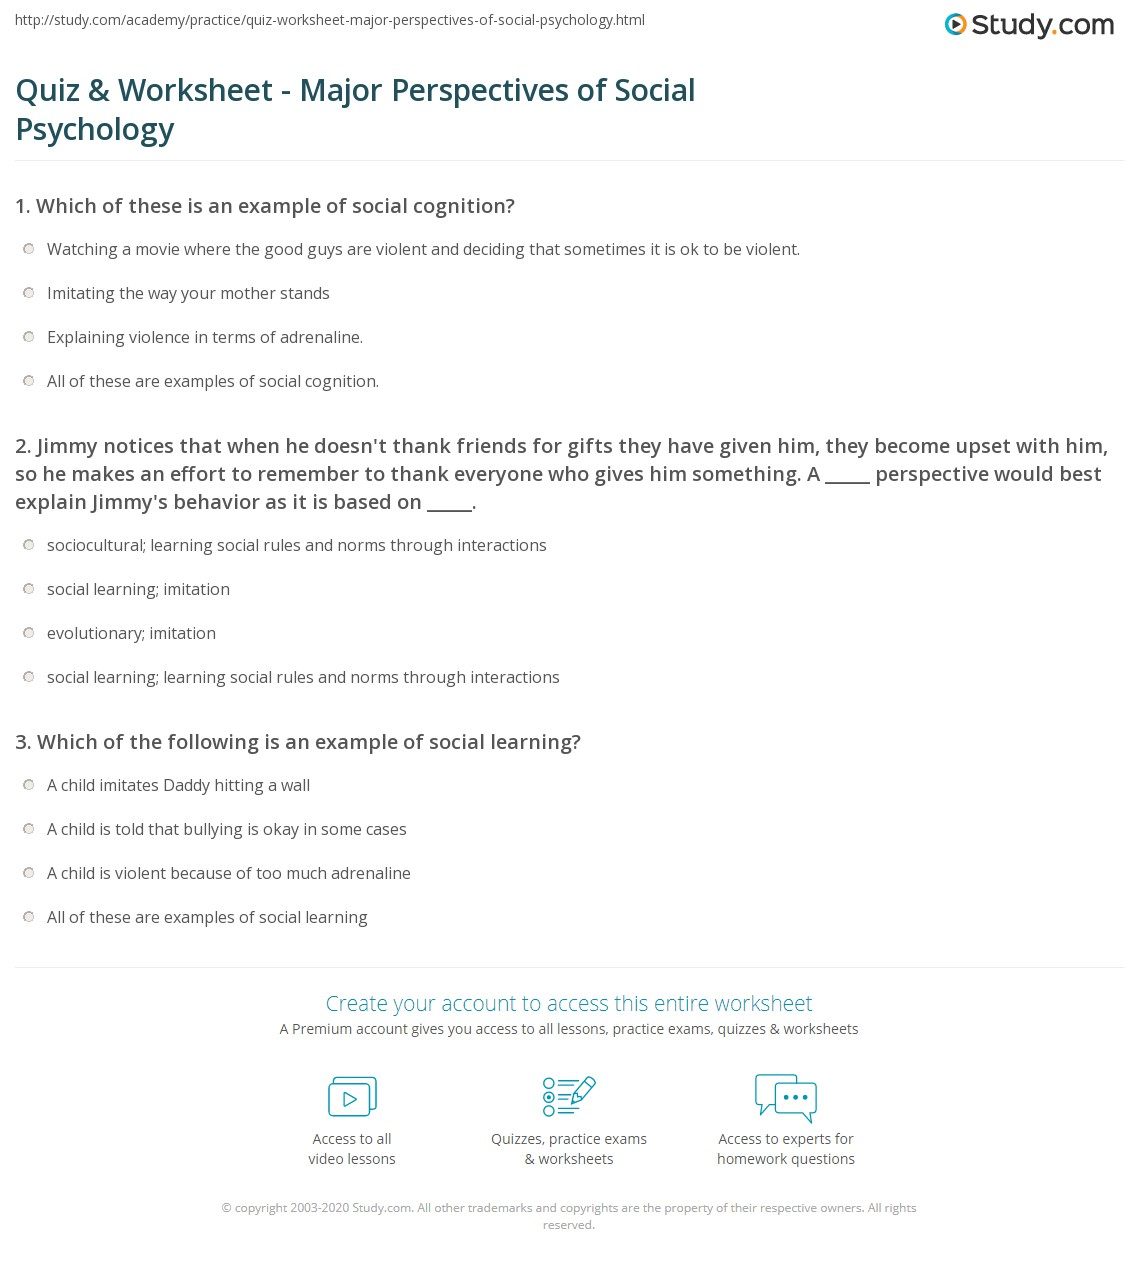 Printables Psychology Worksheets quiz worksheet major perspectives of social psychology study com 1 jimmy notices that when he doesnt thank friends for gifts they have given him become upset with so make